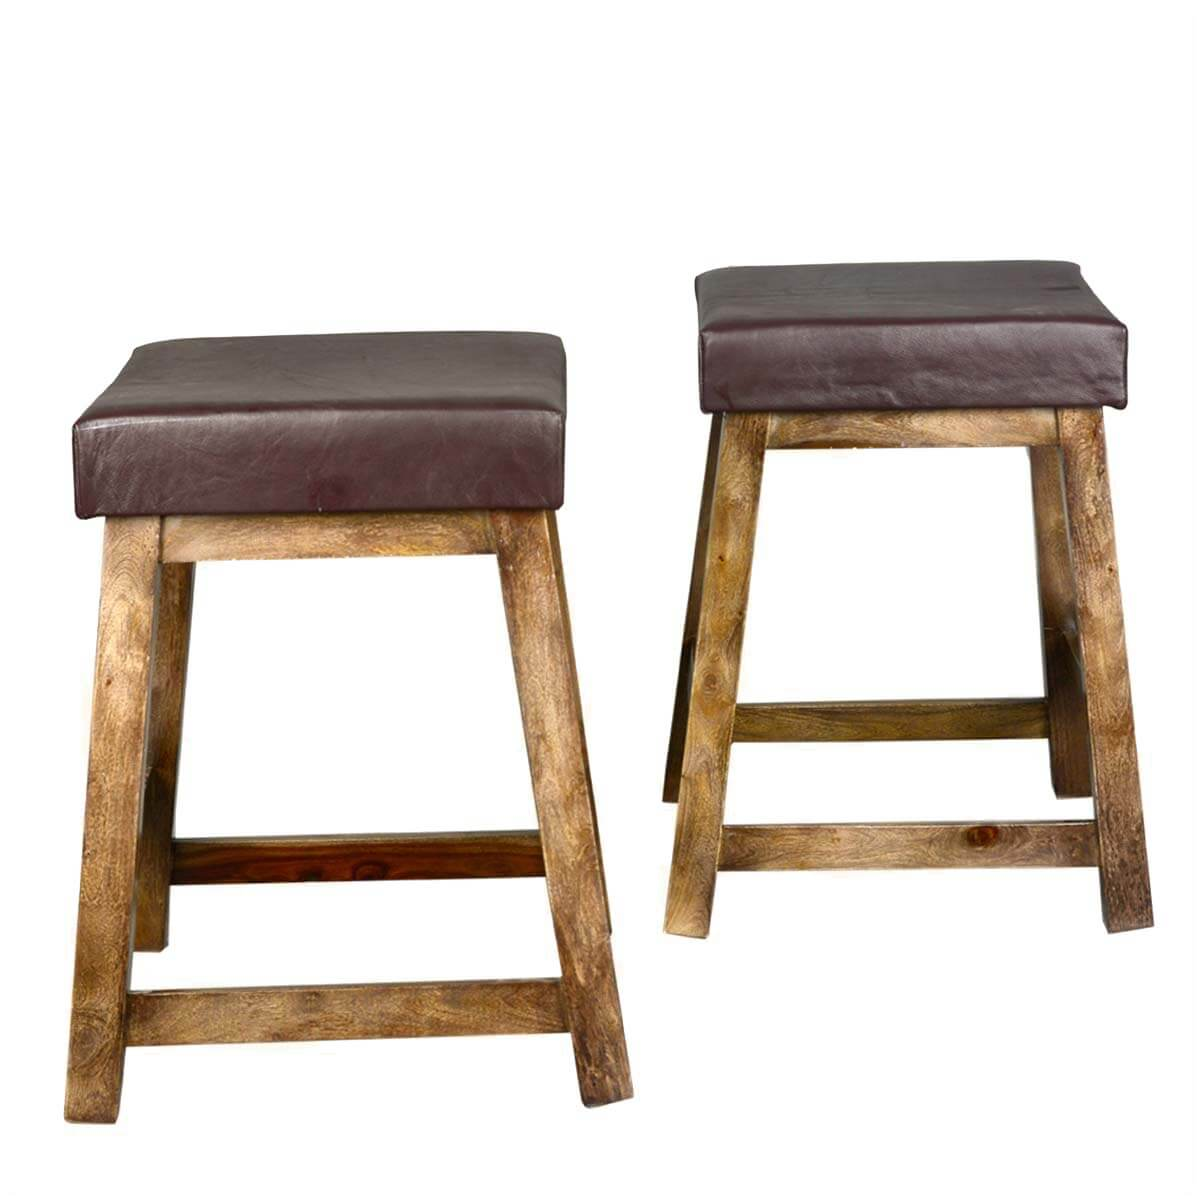 Solid Wood Leather Upholstered Duff Square Counter Stool  : 52283 from www.sierralivingconcepts.com size 1200 x 1200 jpeg 96kB